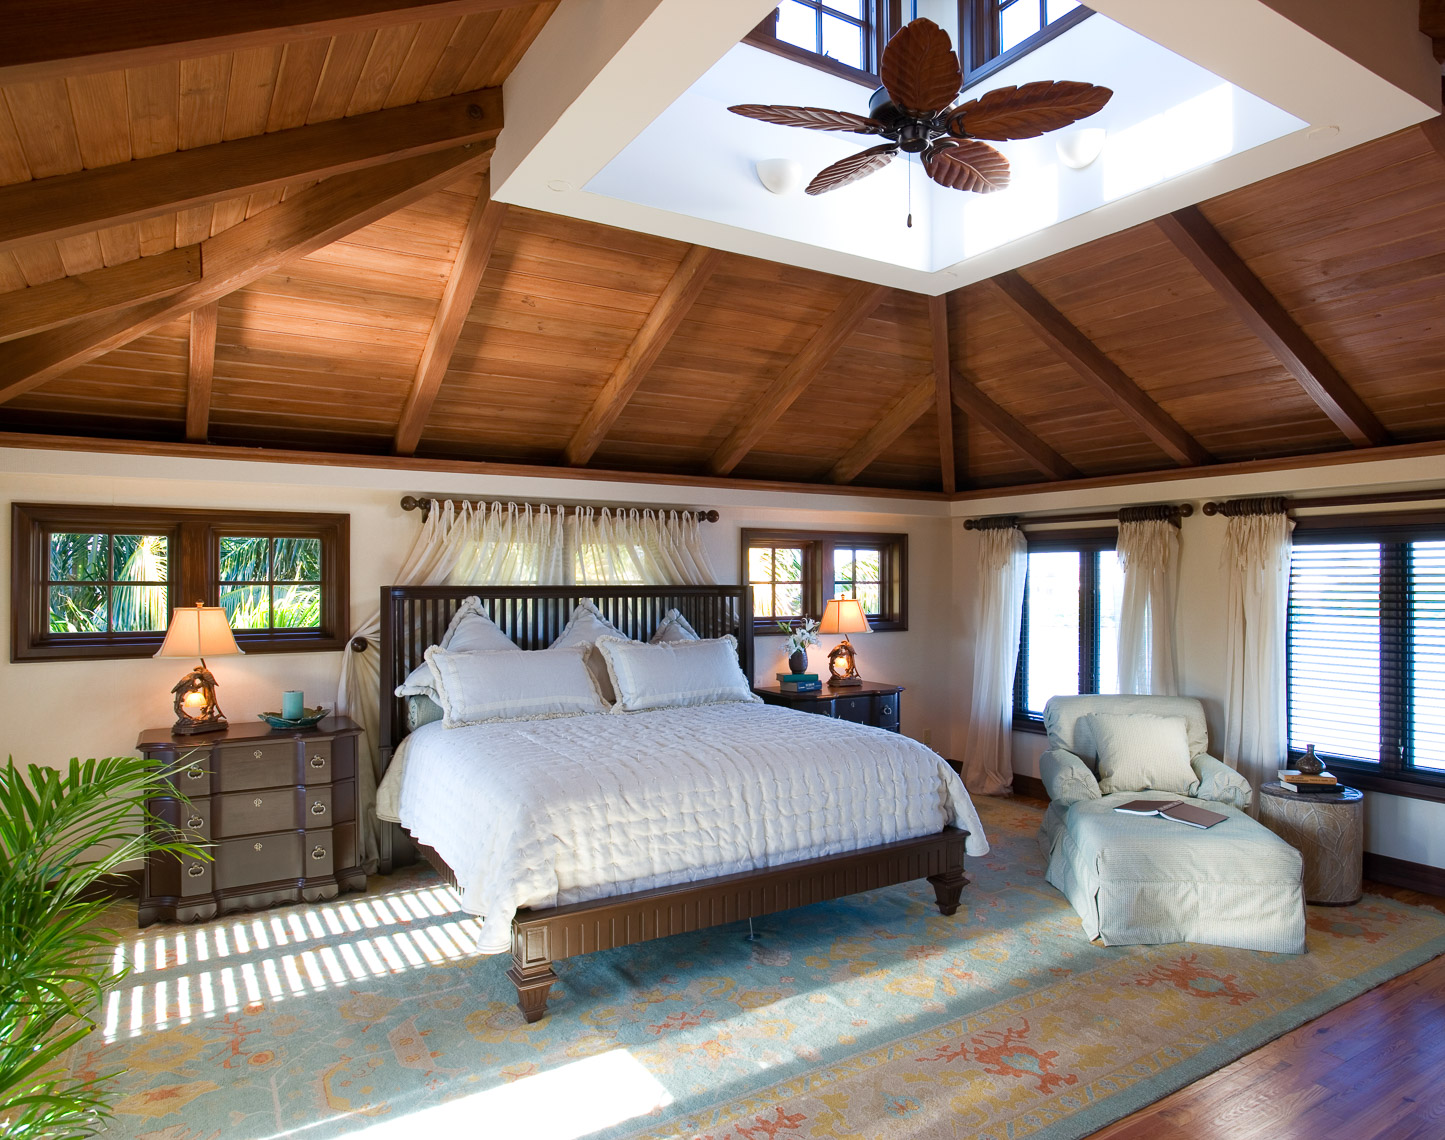 Beach Style Bedroom - Mark Borosch Photography - Longboat Key, FL